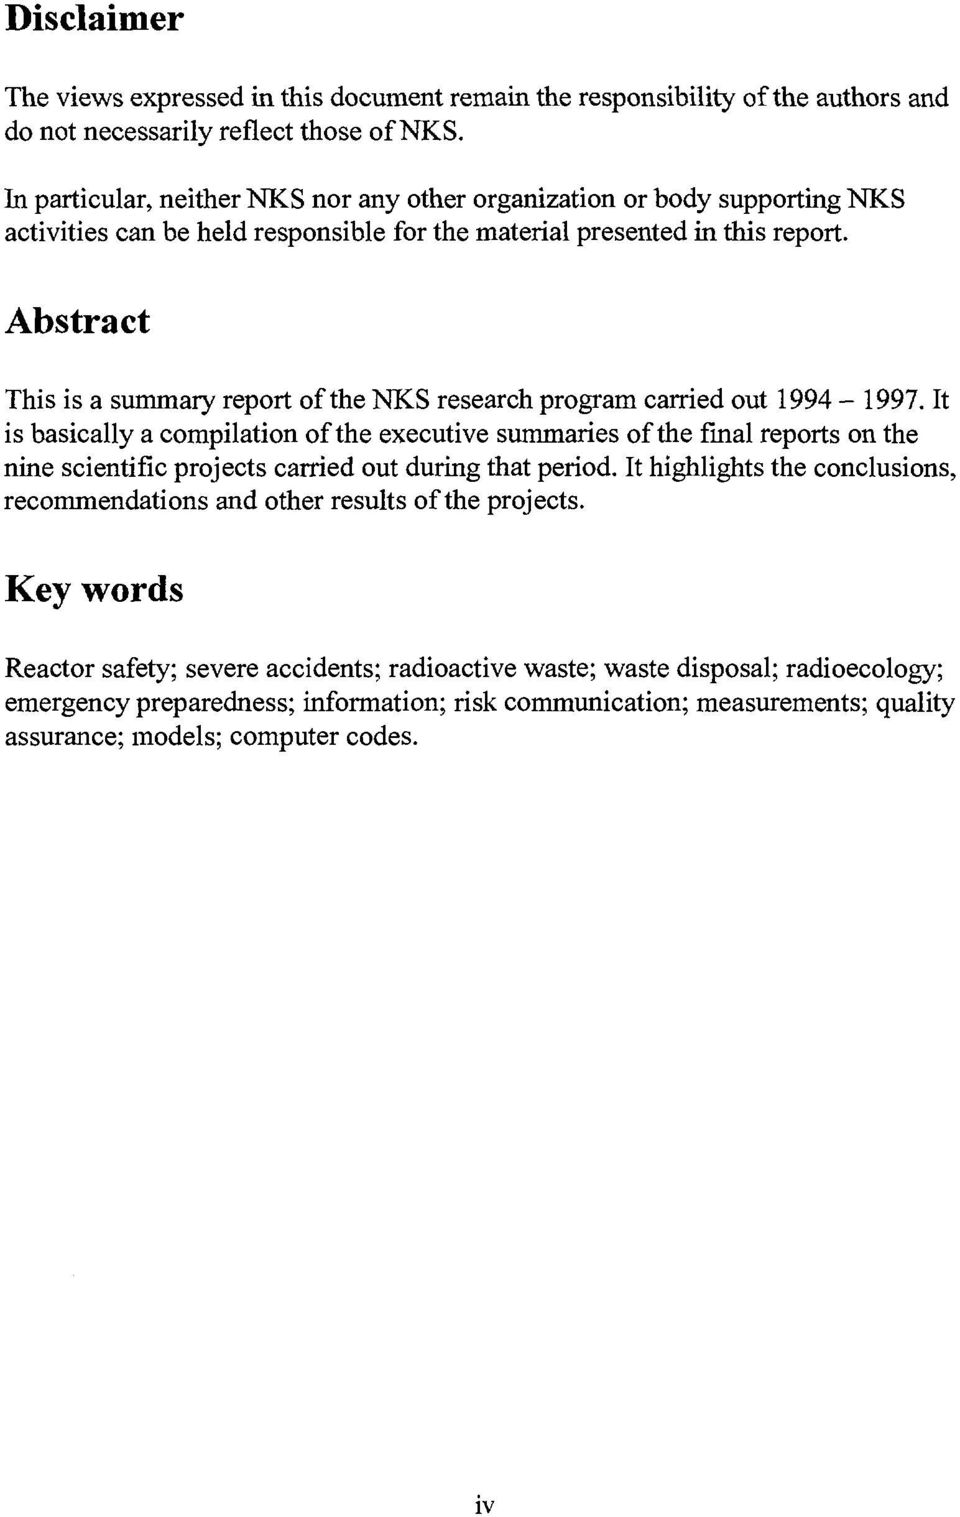 Abstract This is a summary report of the NKS research program carried out 1994-1997.